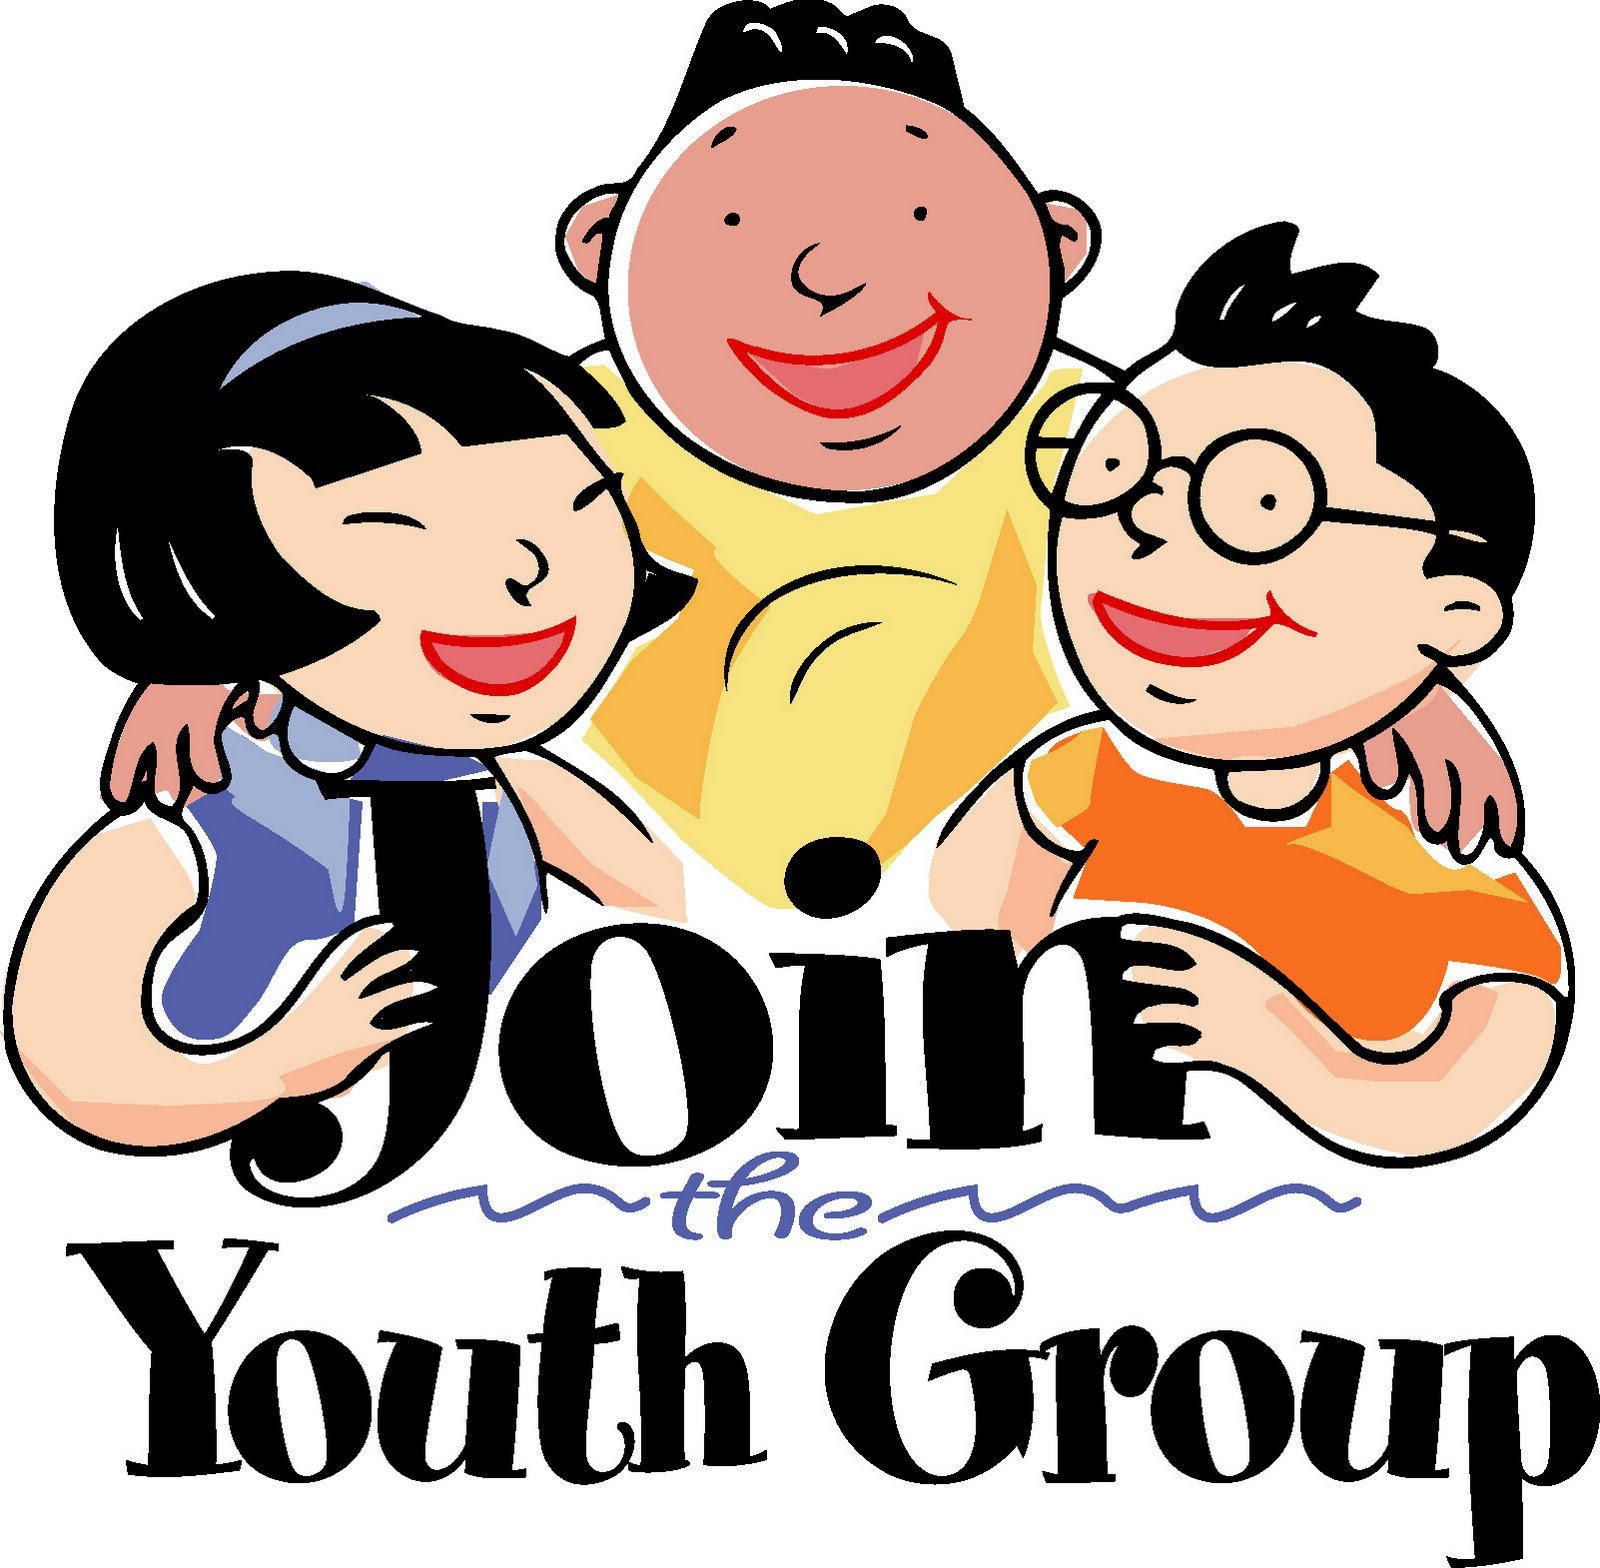 Youth Group Clip Art - ClipArt Best